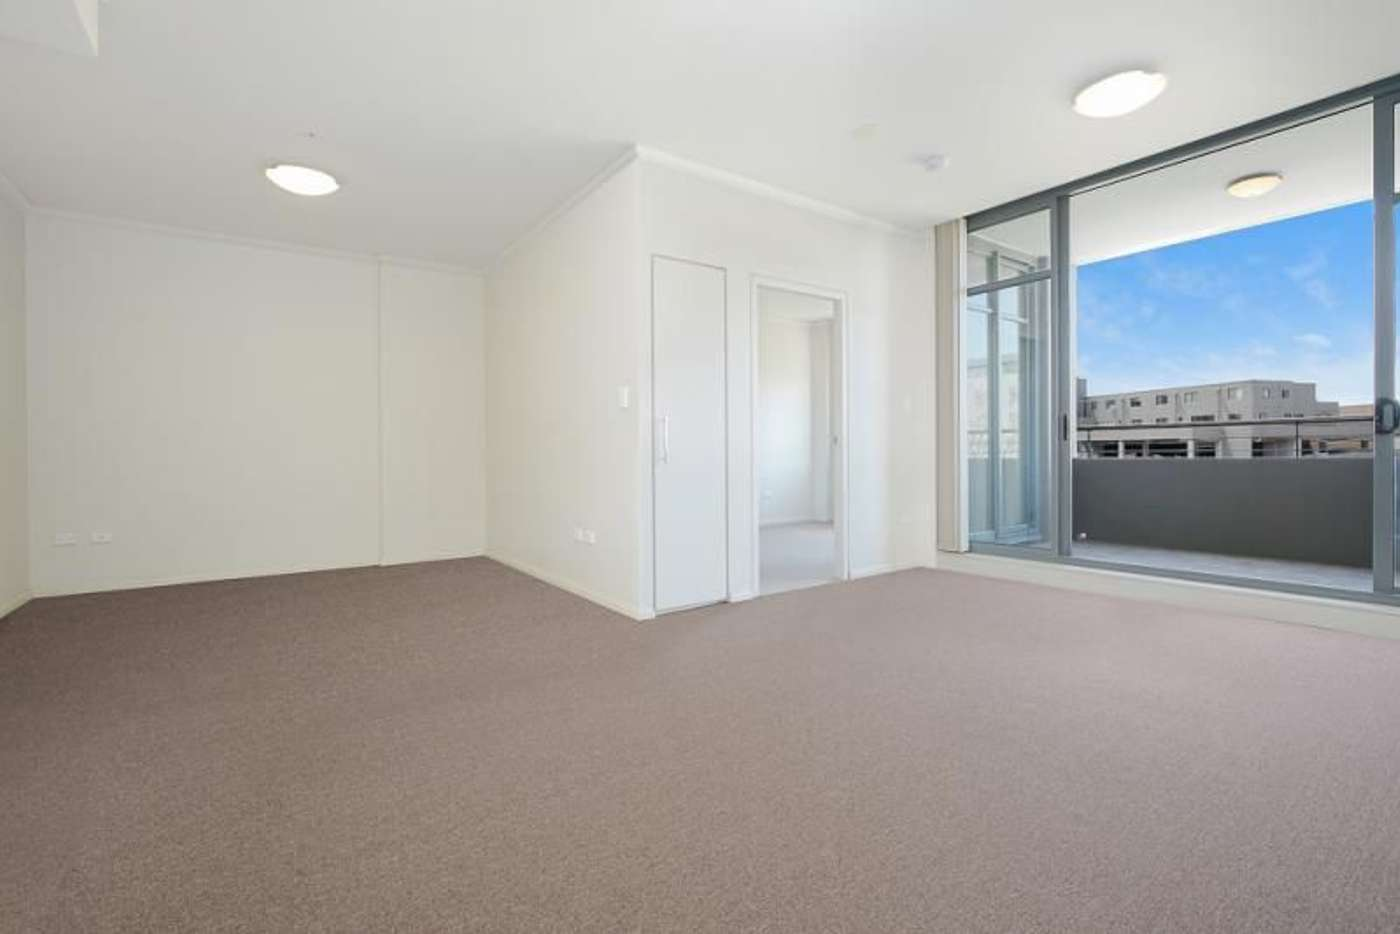 Main view of Homely apartment listing, 416/747 Anzac Parade, Maroubra NSW 2035